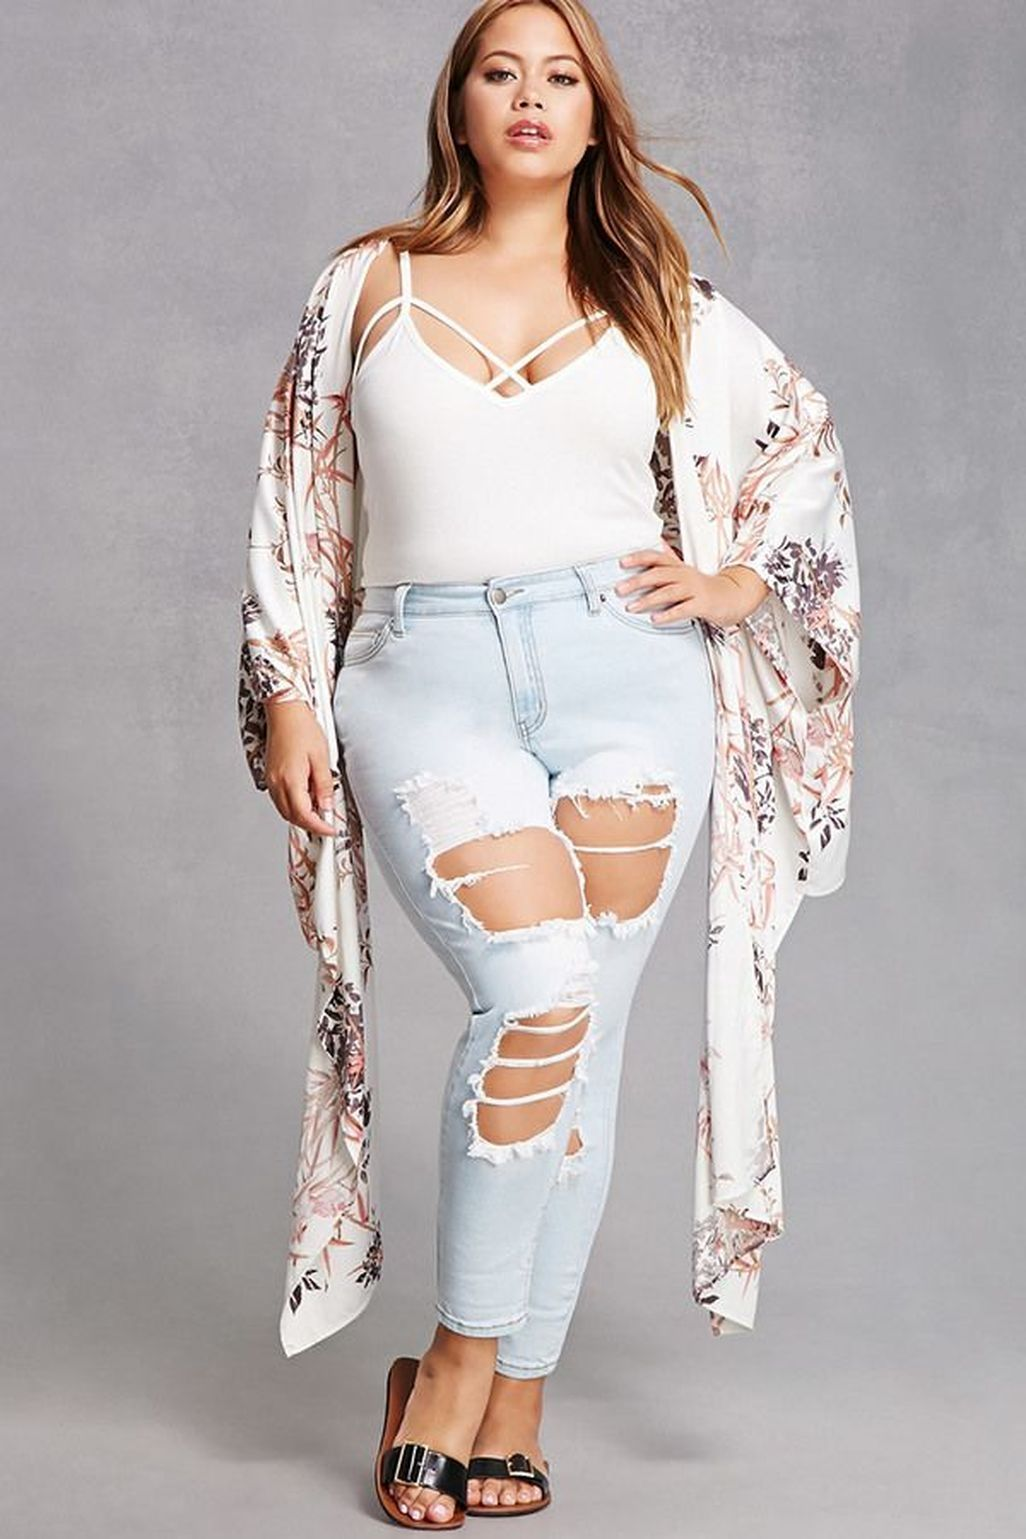 77b31881134f5 Awesome 46 Cute Plus Size Summer Outfit Ideas. More at https   wear4trend